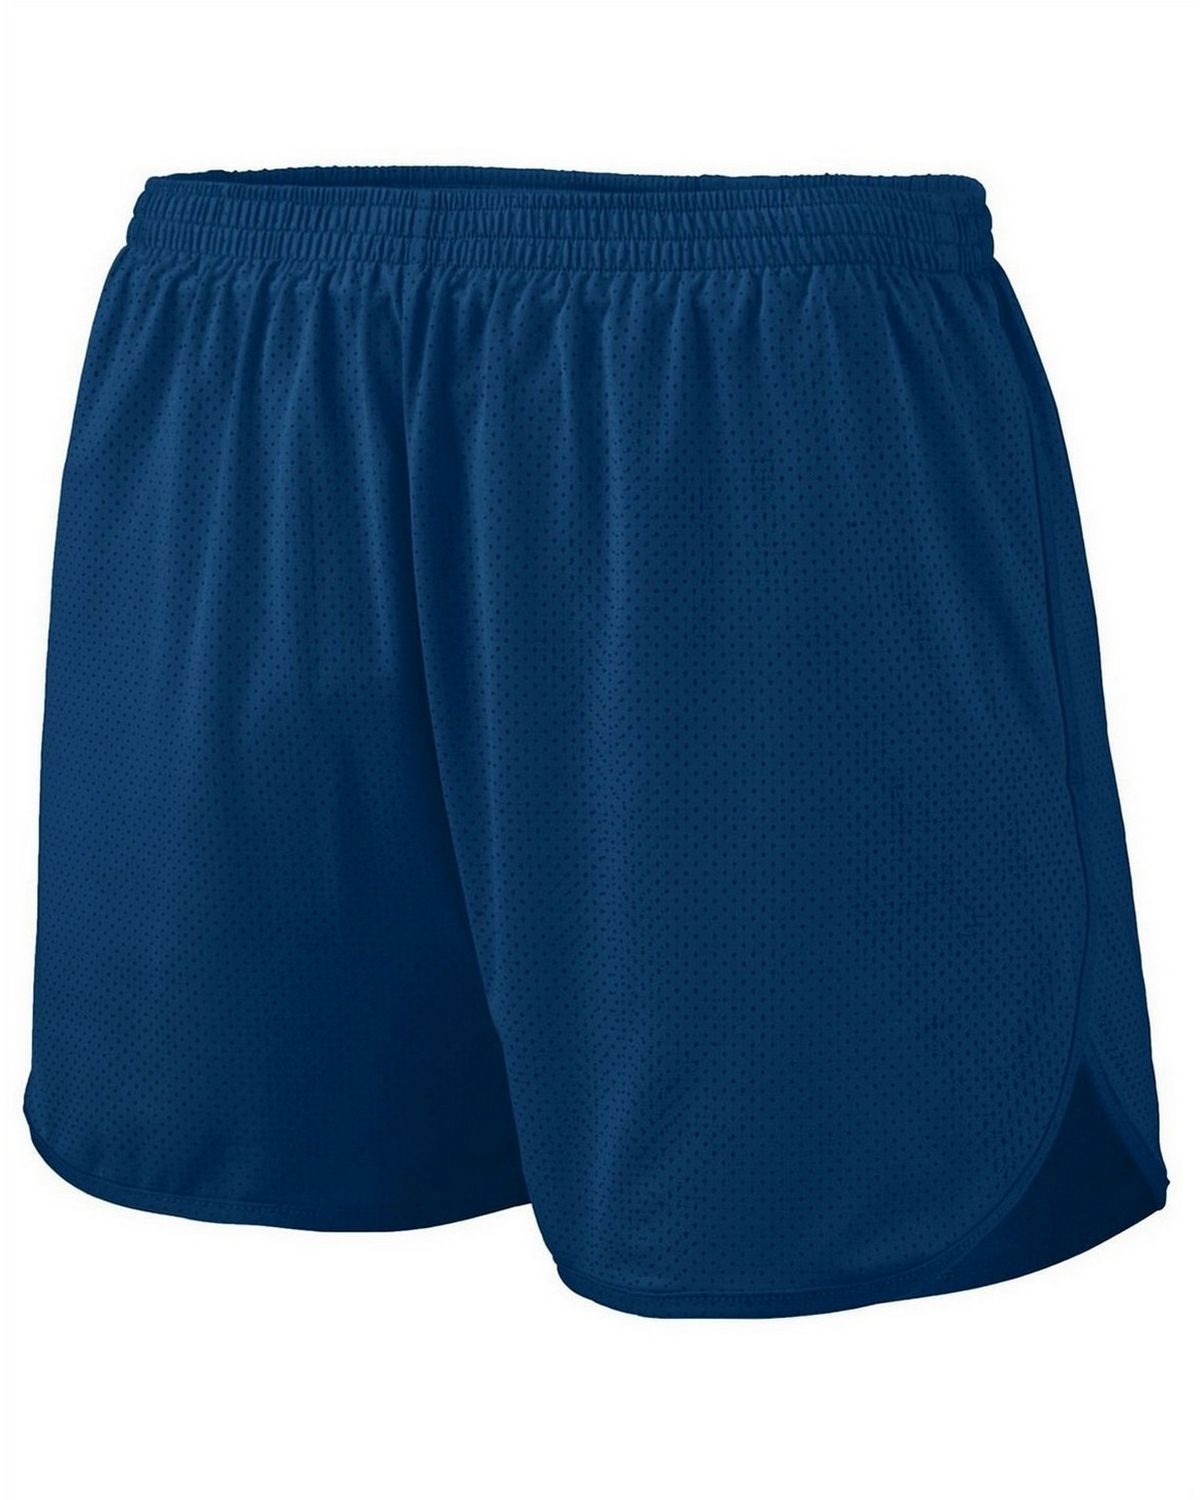 Augusta Sportswear 338 Wicking Short - Navy - S 338